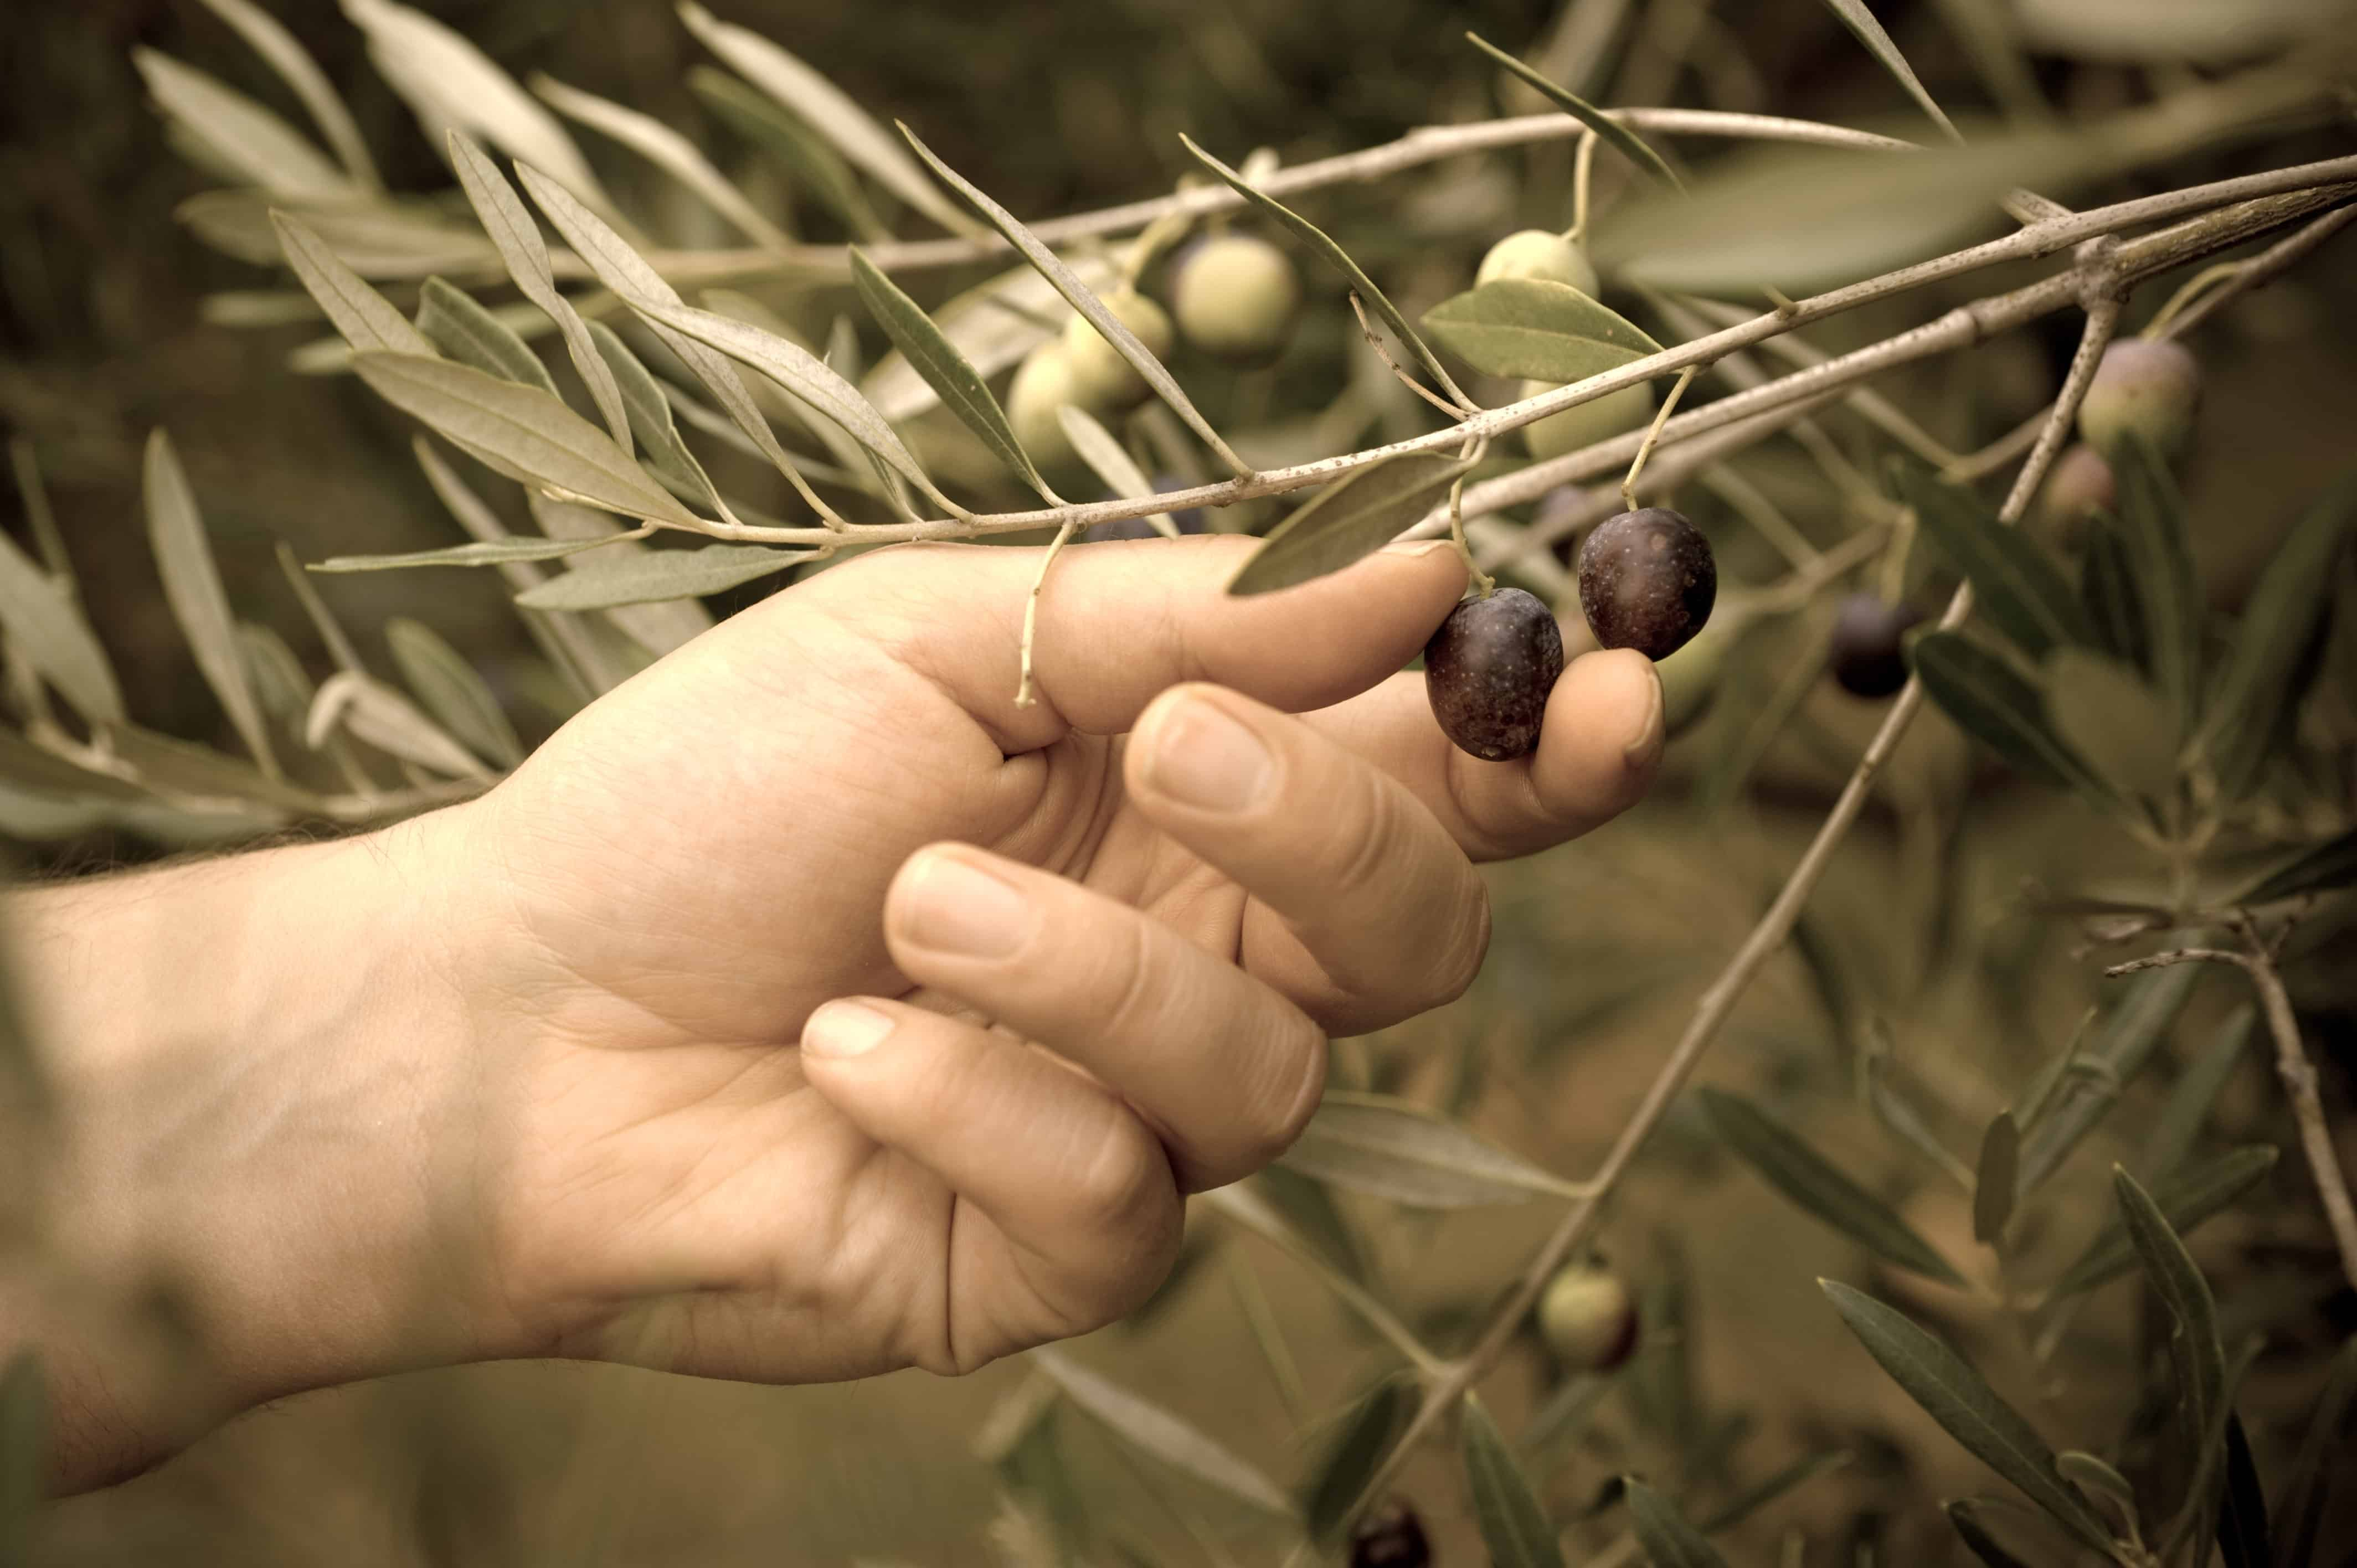 Picking Olives by Hand, Sardo Foods was built on Sustainability and Tradition